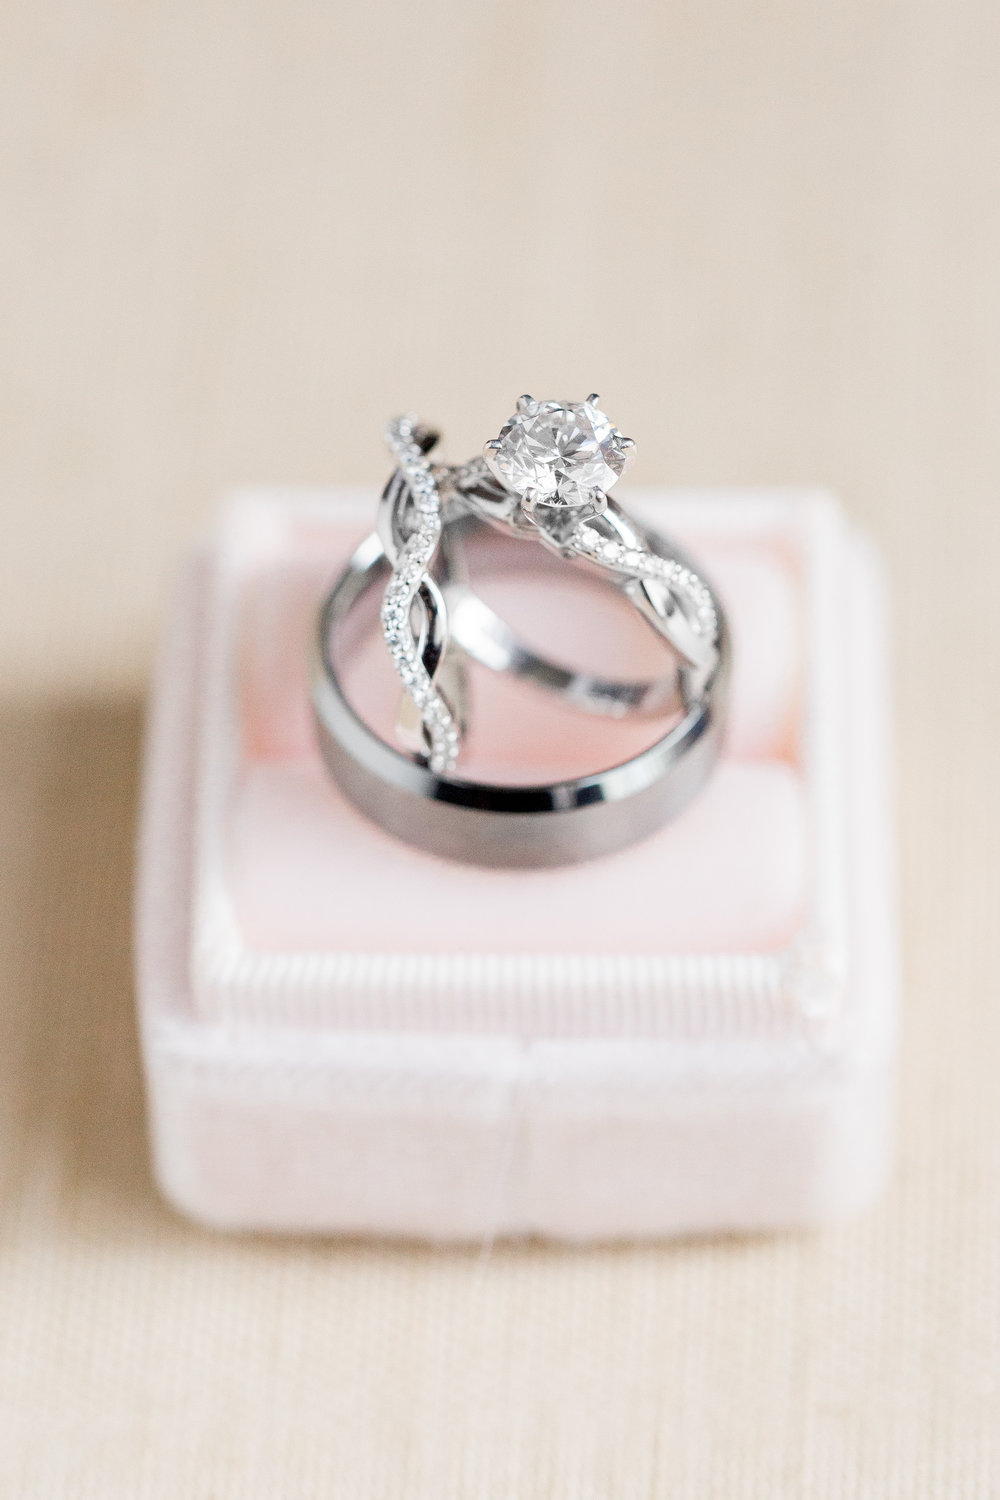 15wedding-rings-captured-by-destination-wedding-photographer (10 of).jpg